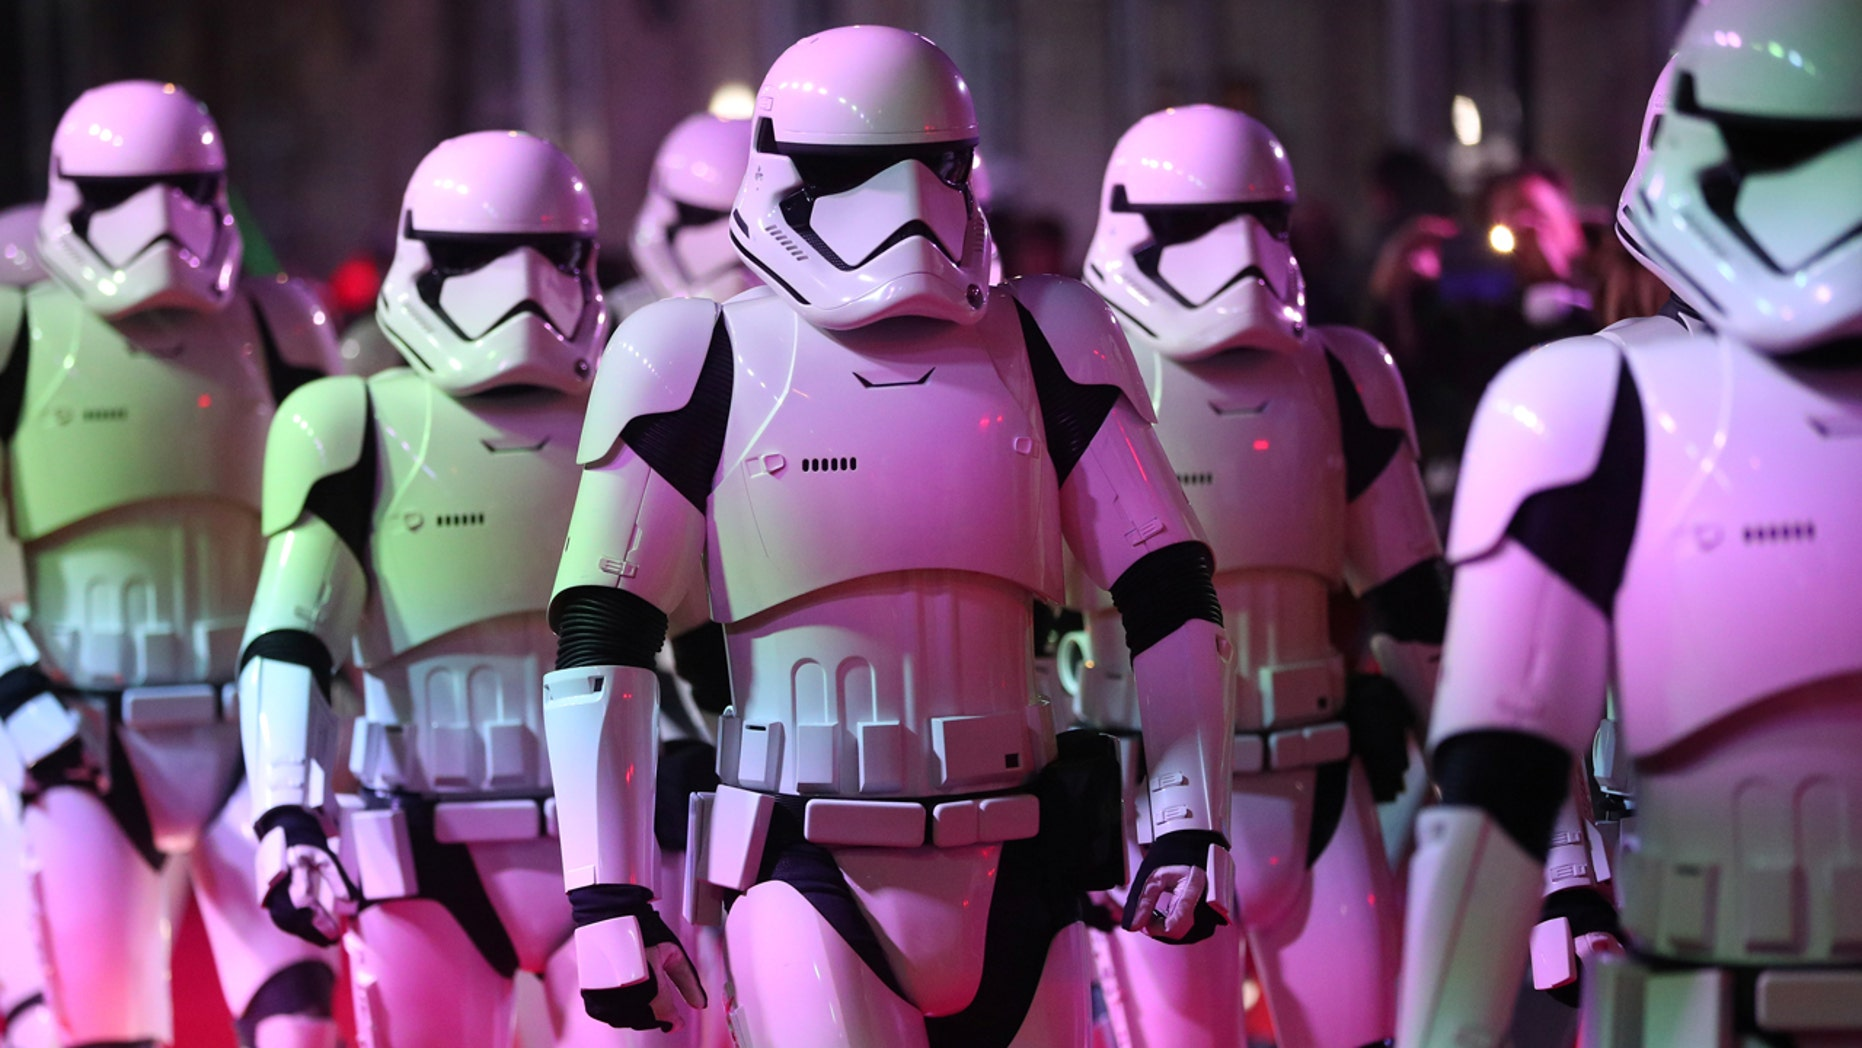 Actors dressed as storm troopers arrive for the European Premiere of 'Star Wars: The Last Jedi', at the Royal Albert Hall in central London, Britain December 12, 2017. REUTERS/Hannah McKay - RC1B25C34AD0